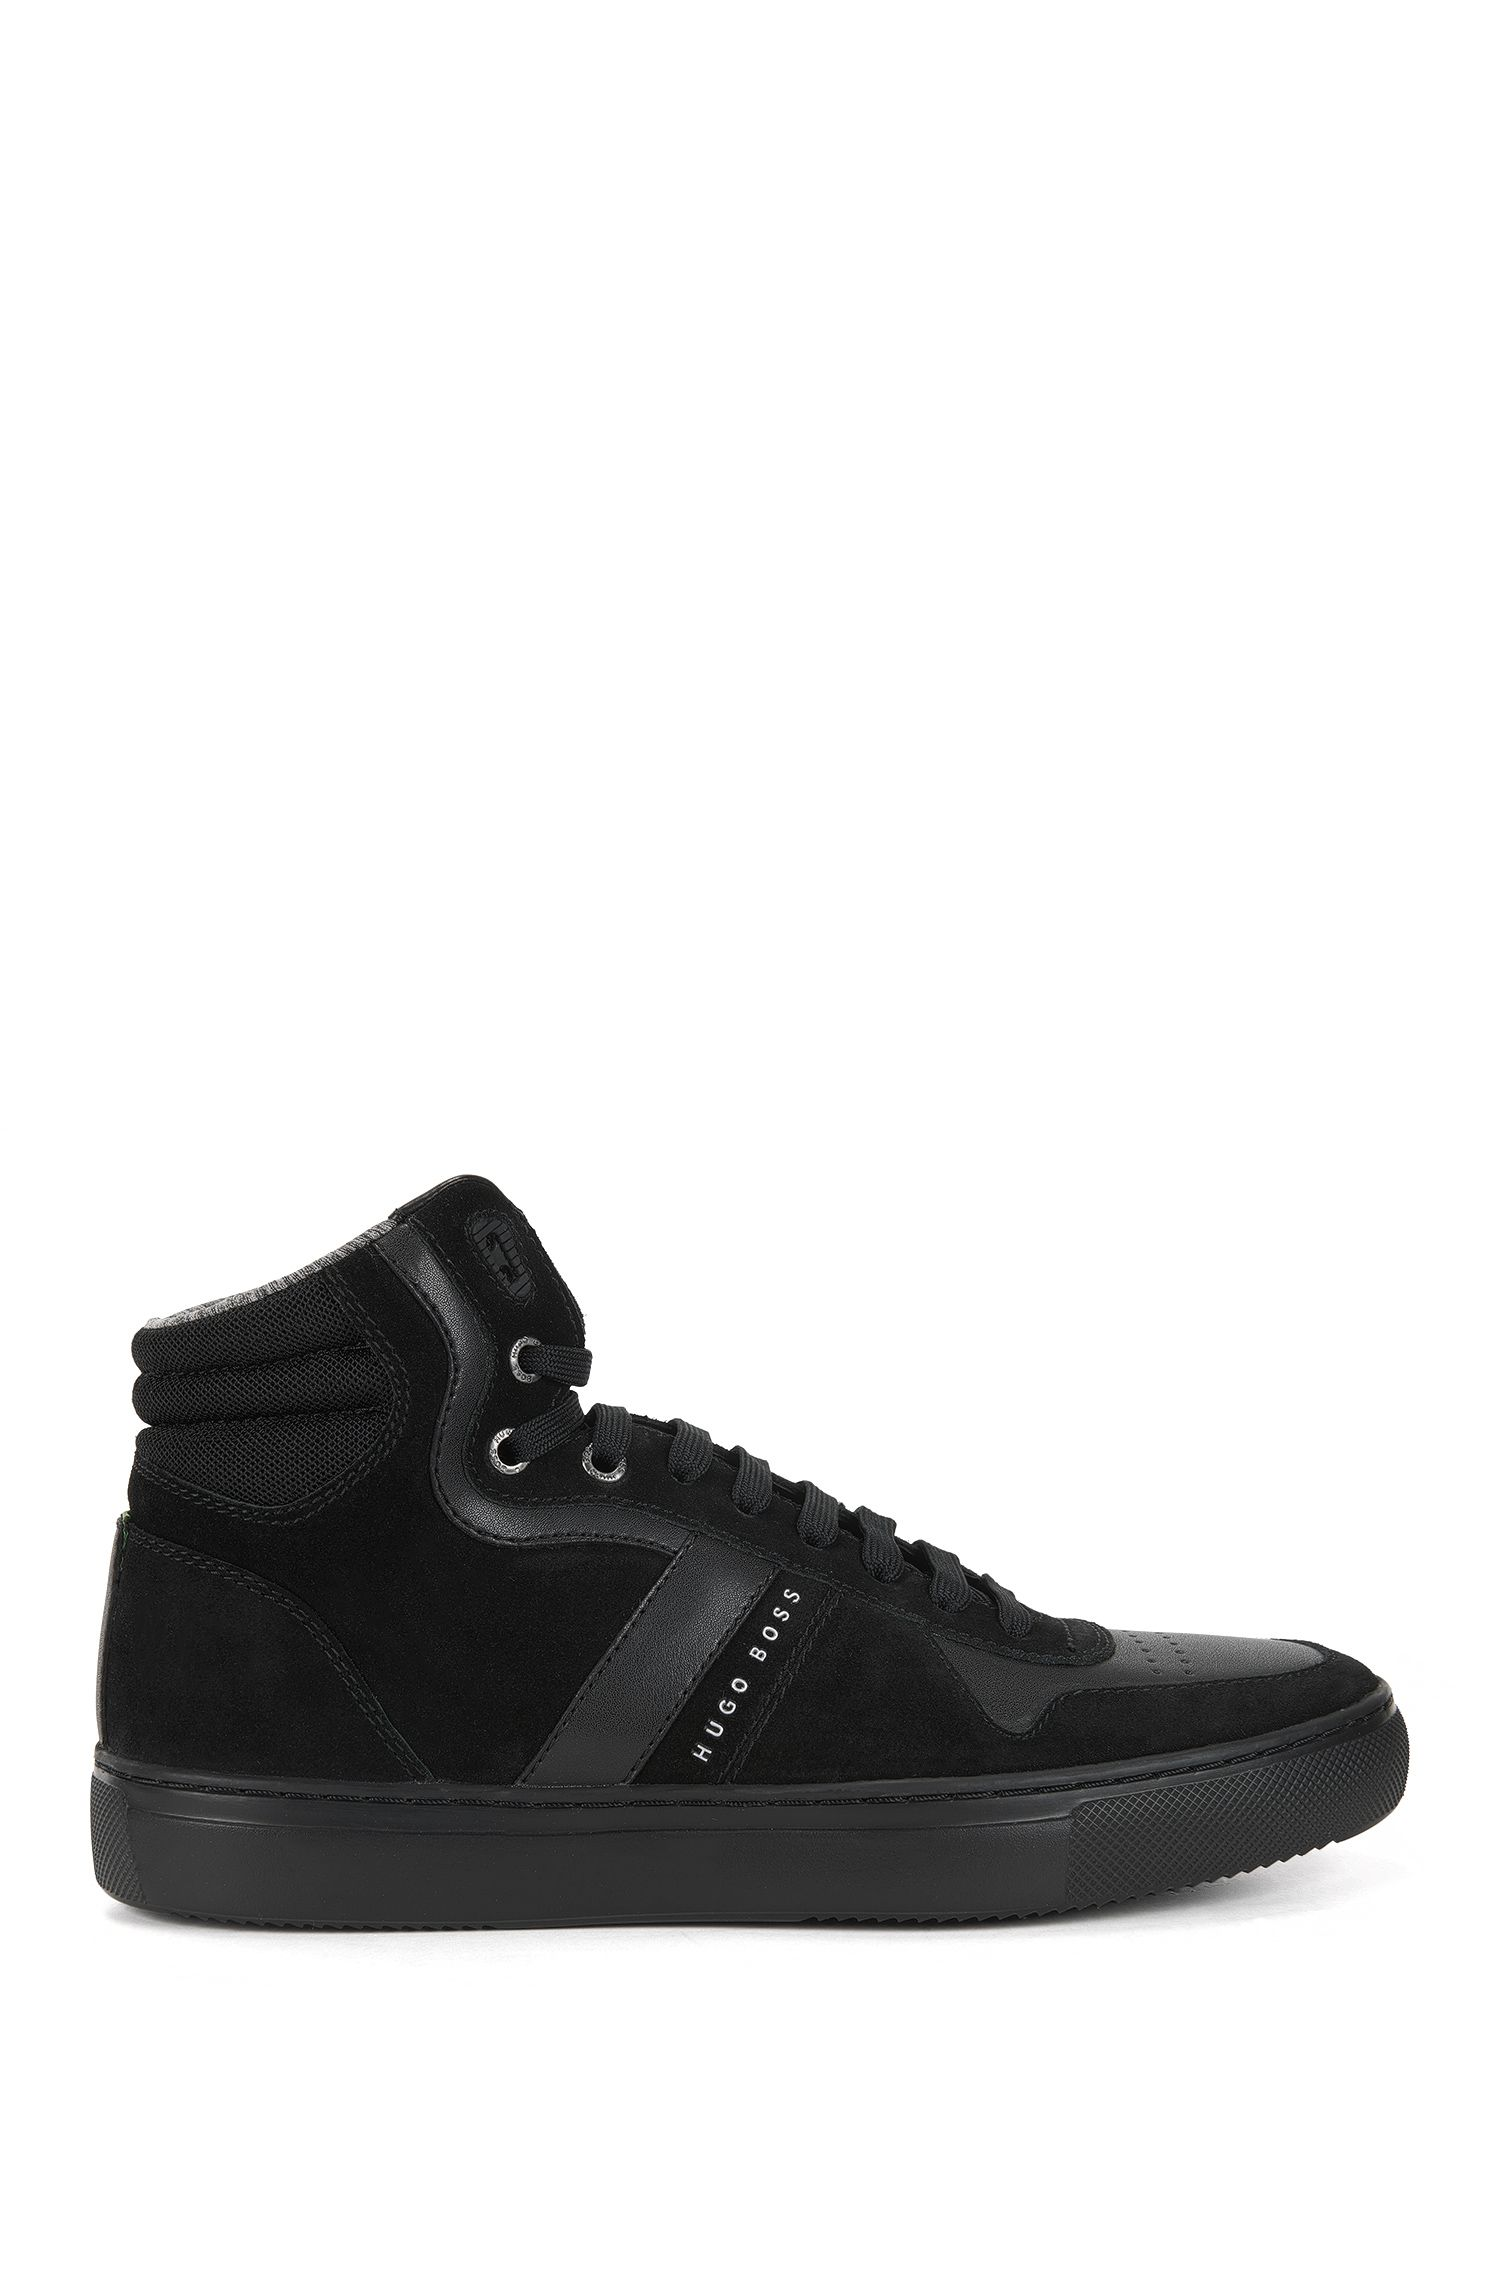 Leather & Suede High Top Sneaker | Enlight Hito Sdmx, Black